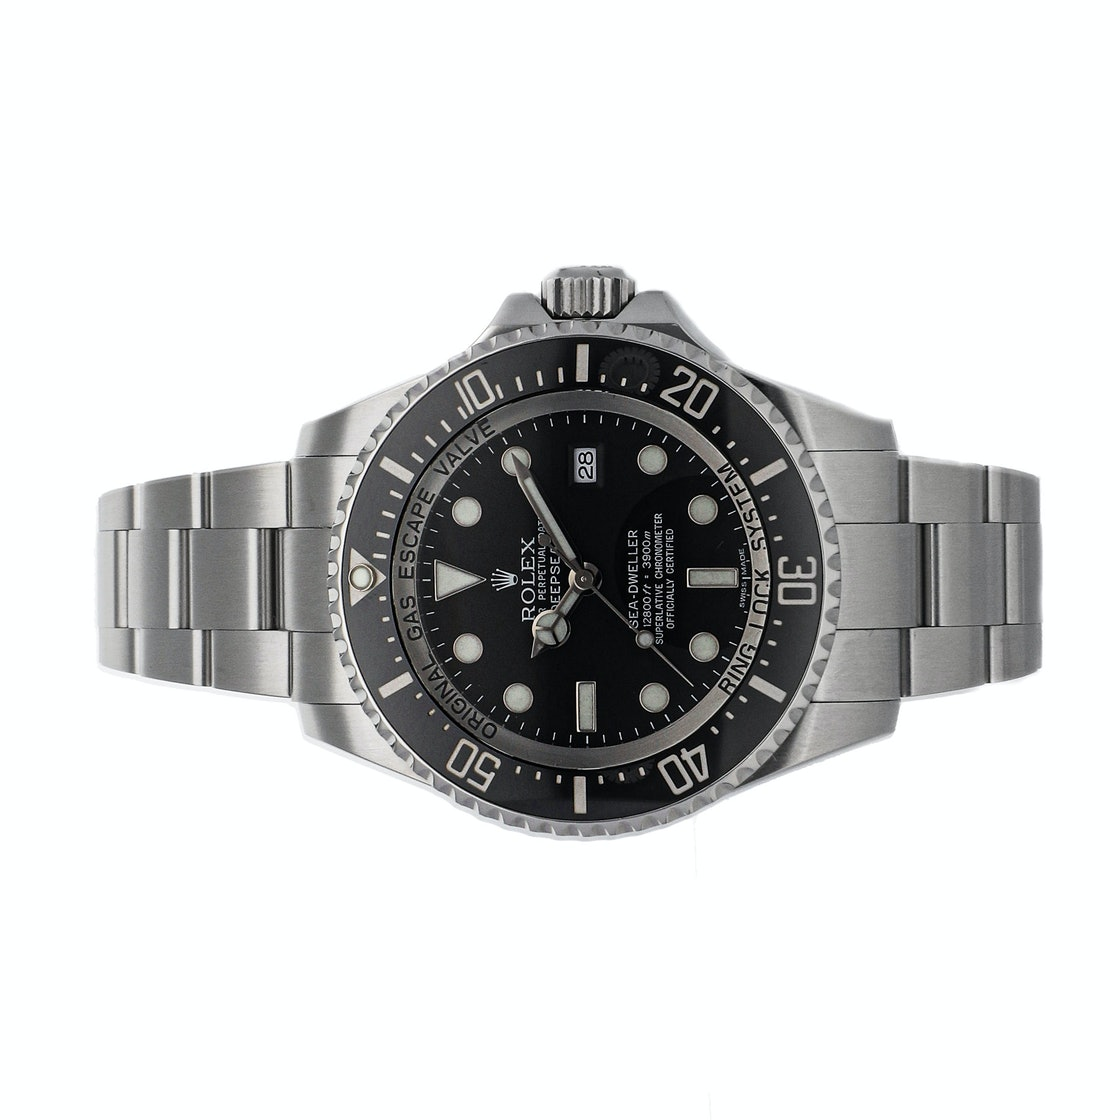 Rolex Deepsea Sea-Dweller 116660